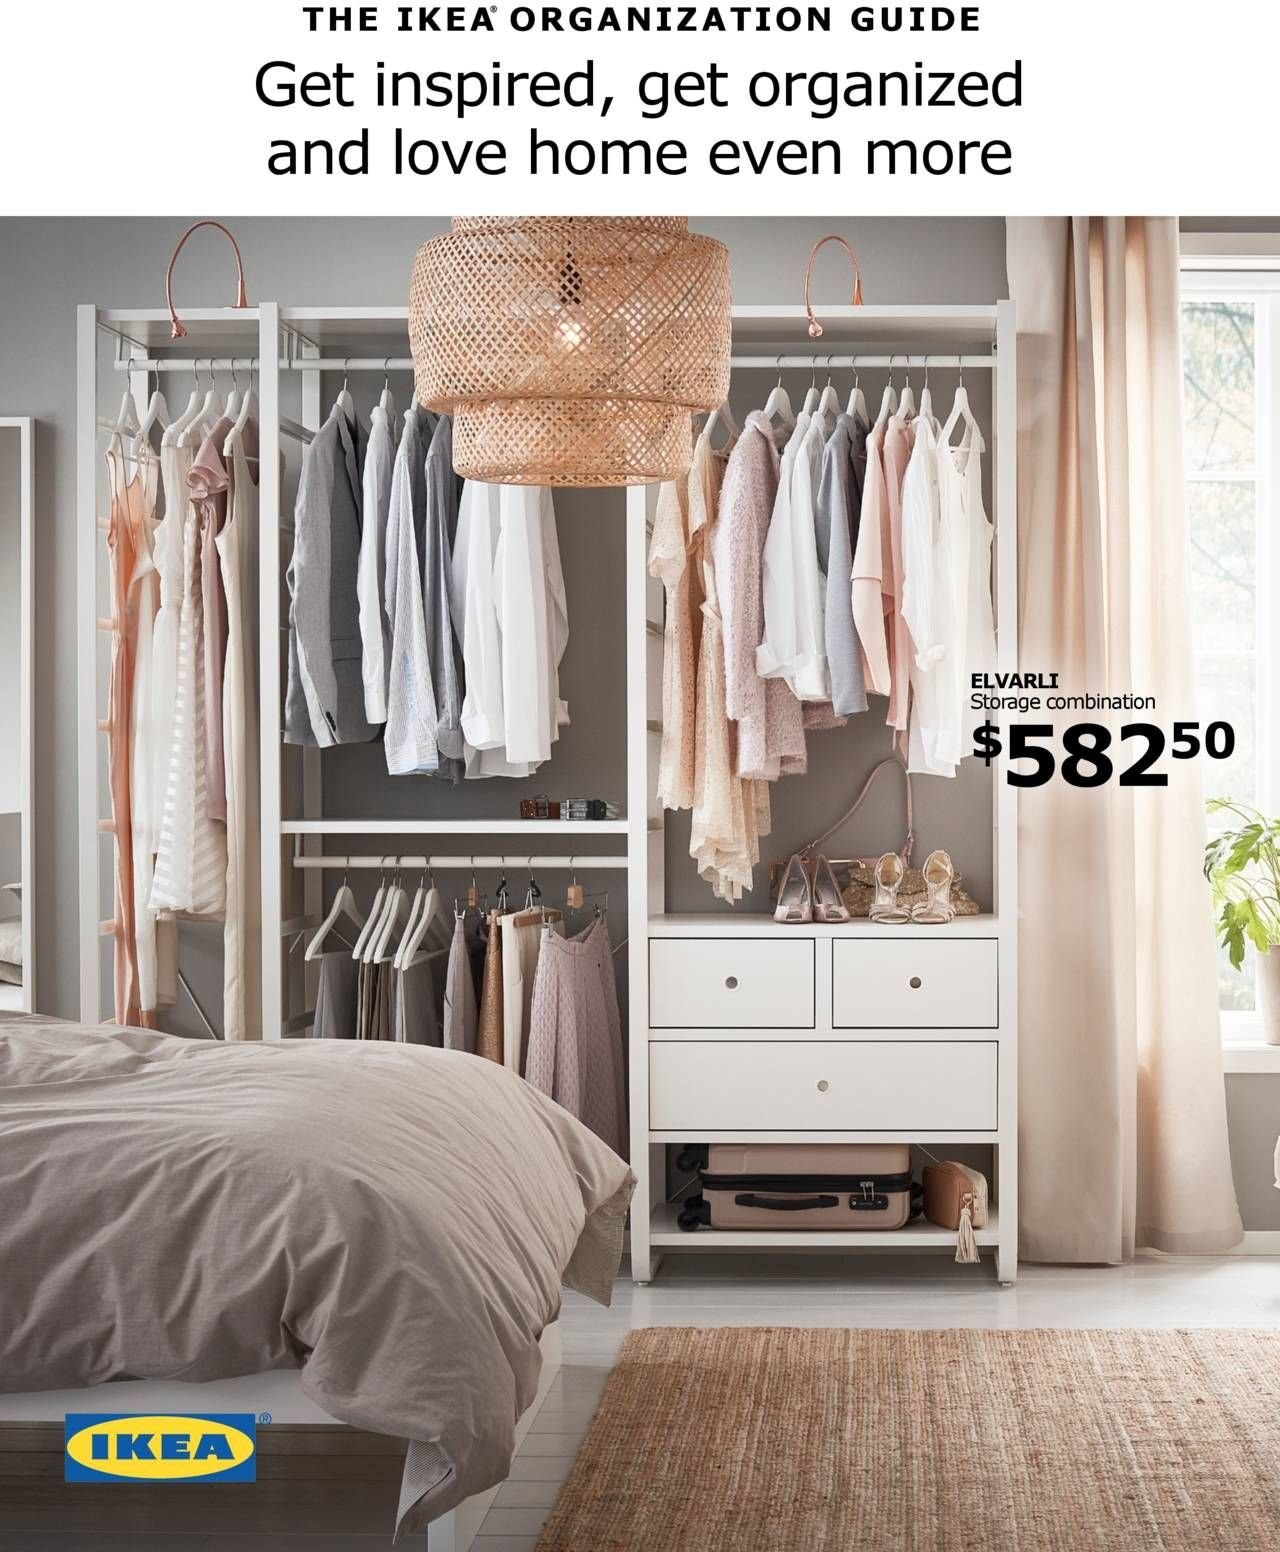 IKEA Flyer - Sales products - storage. Page 1.